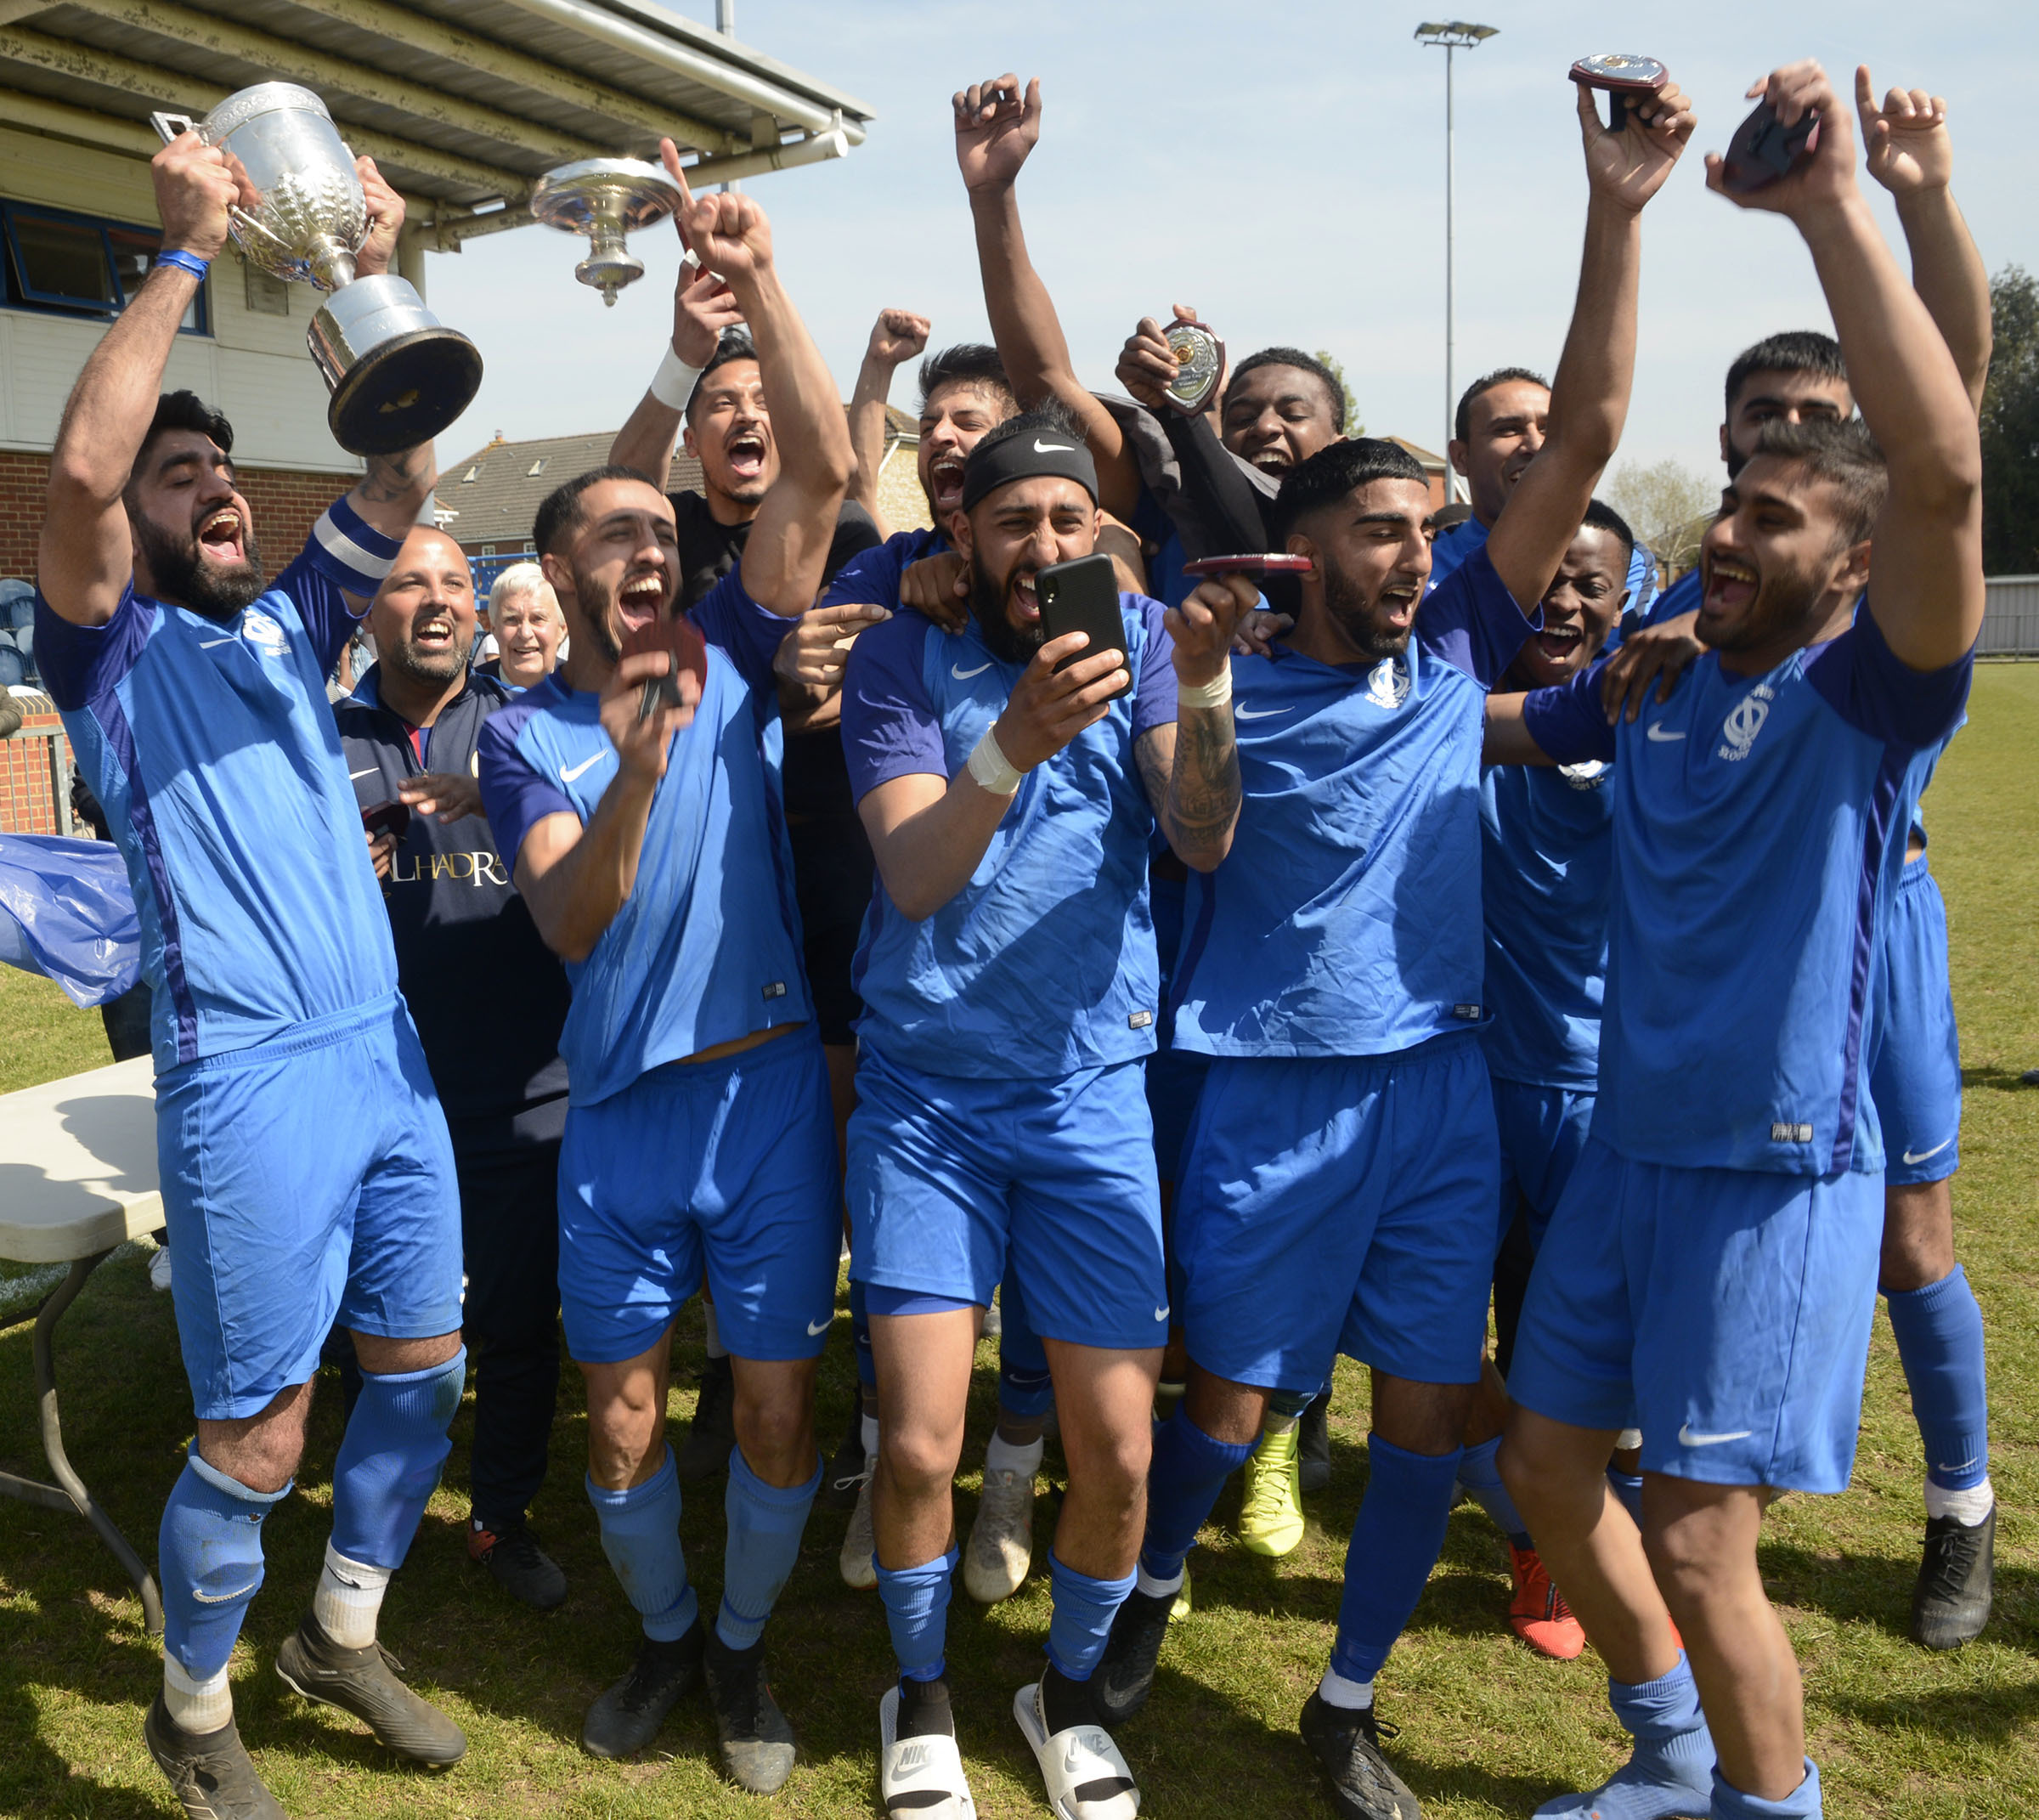 Singh Sabha (blue) celebrate with the Slough Town Challenge Cup after a 2-1 win against Langley (red and blue) in the final at The Gore in Burnham on Good Friday. PHOTOS: Paul Johns. 190458.